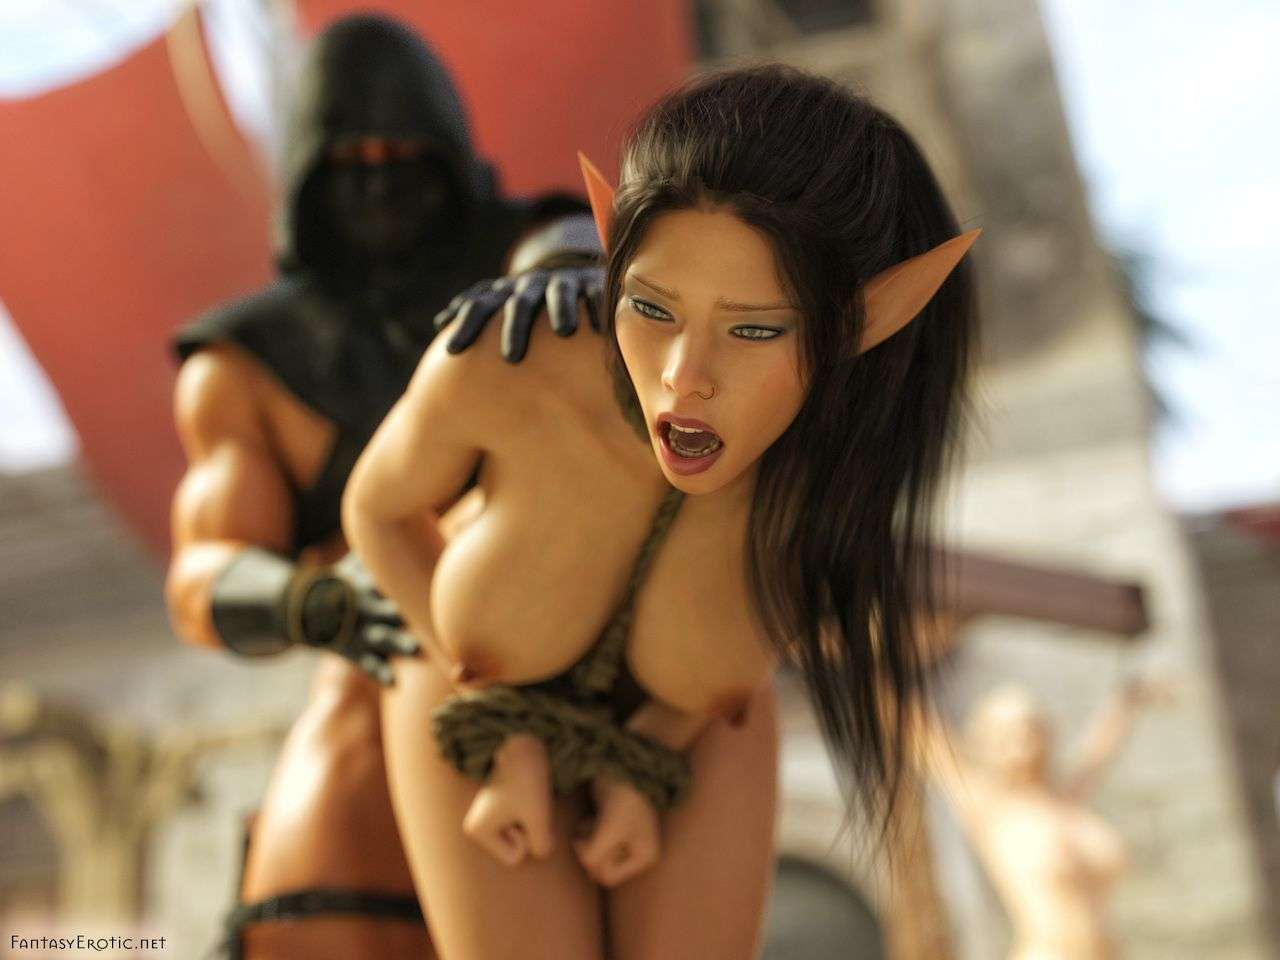 TalesOfNia-C2-08-FantasyErotic